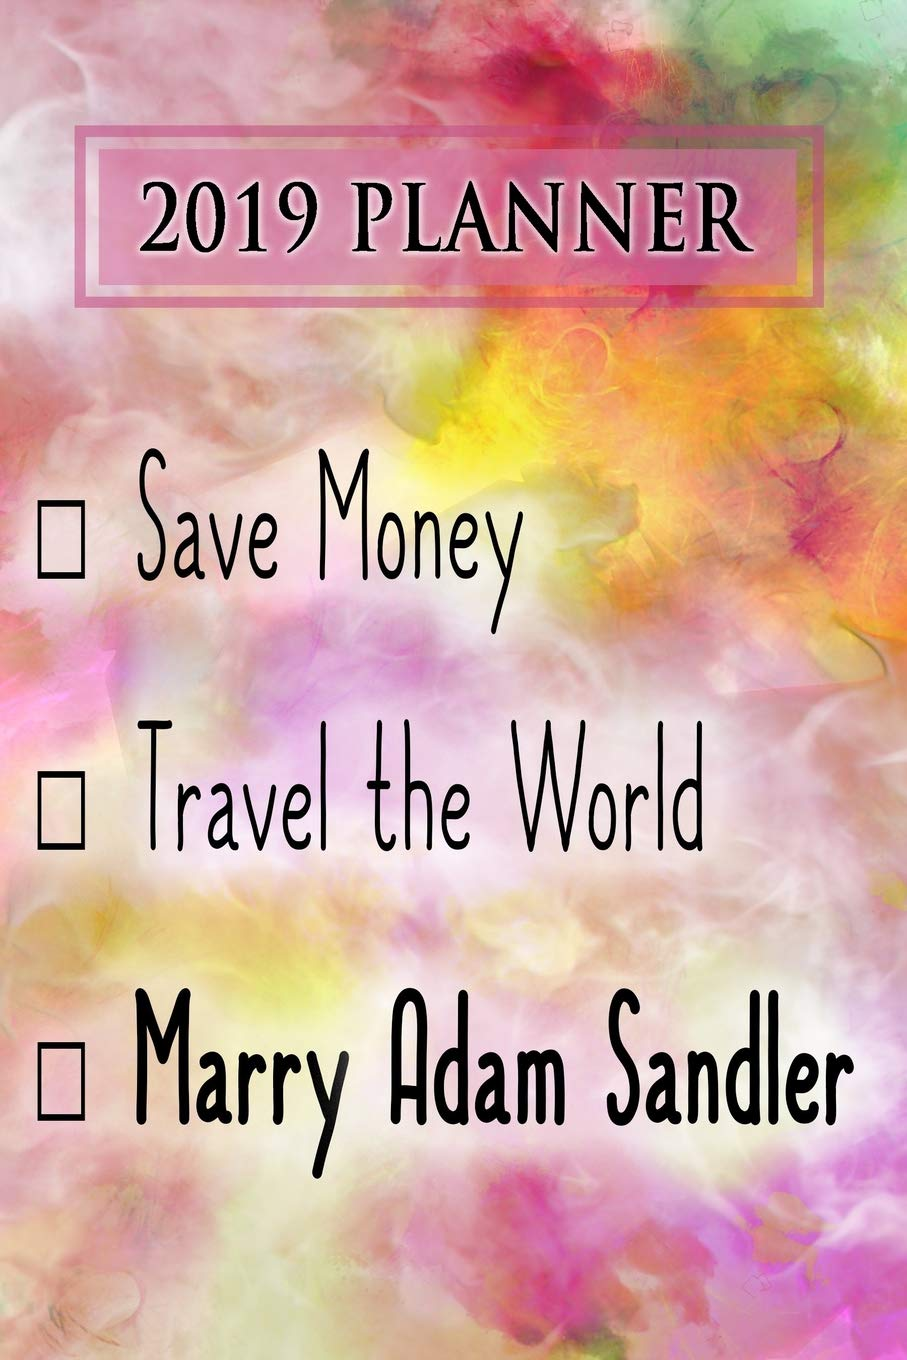 2019 Planner: Save Money, Travel The World, Marry Adam